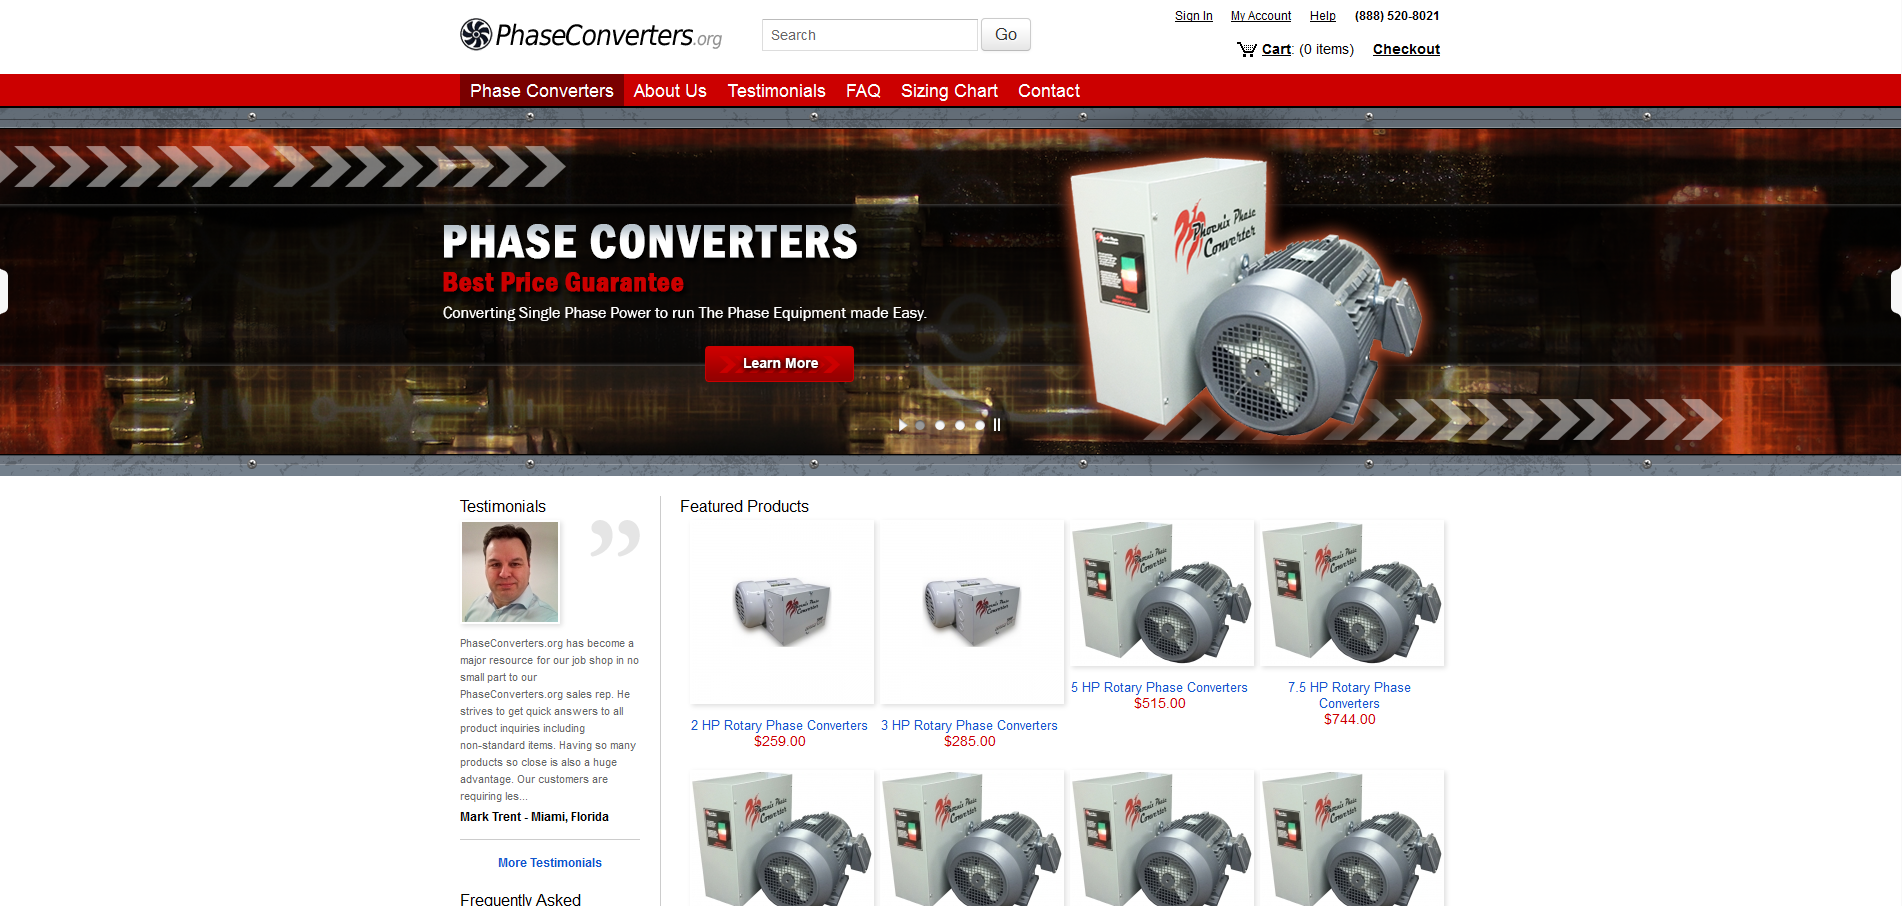 PhaseConverters.org Leading E-Commerce Website